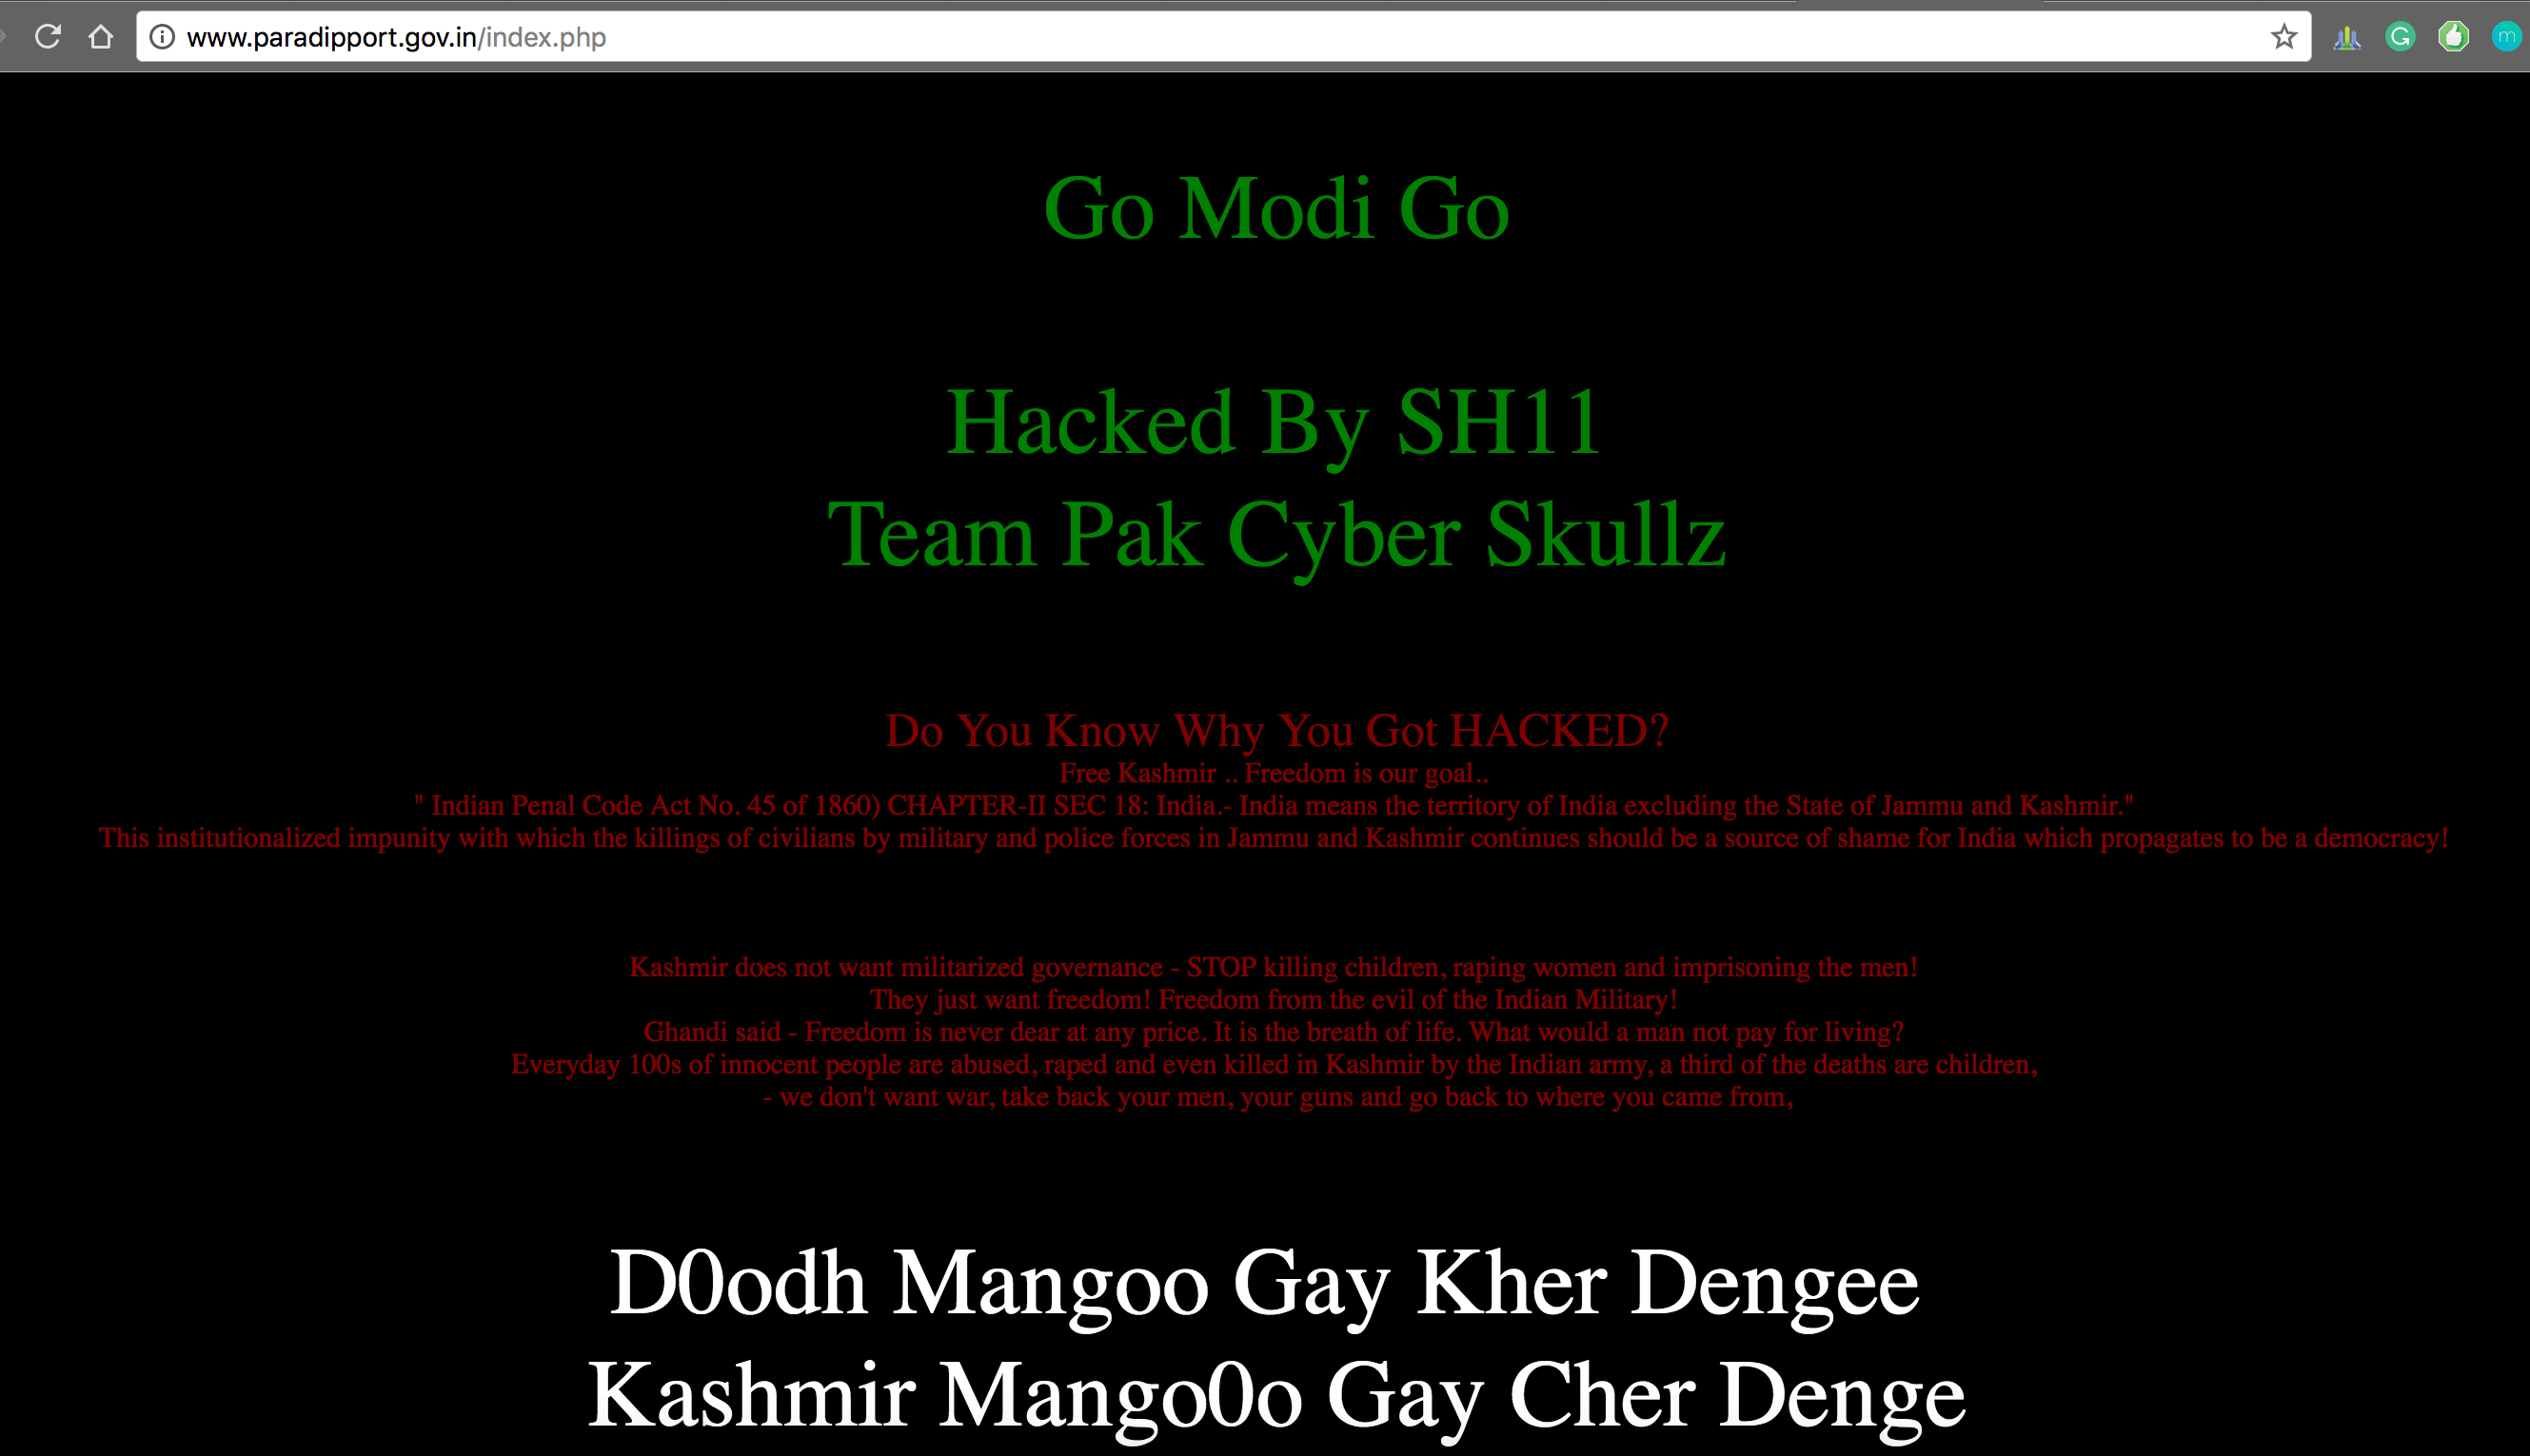 Paradip Port India Hacked